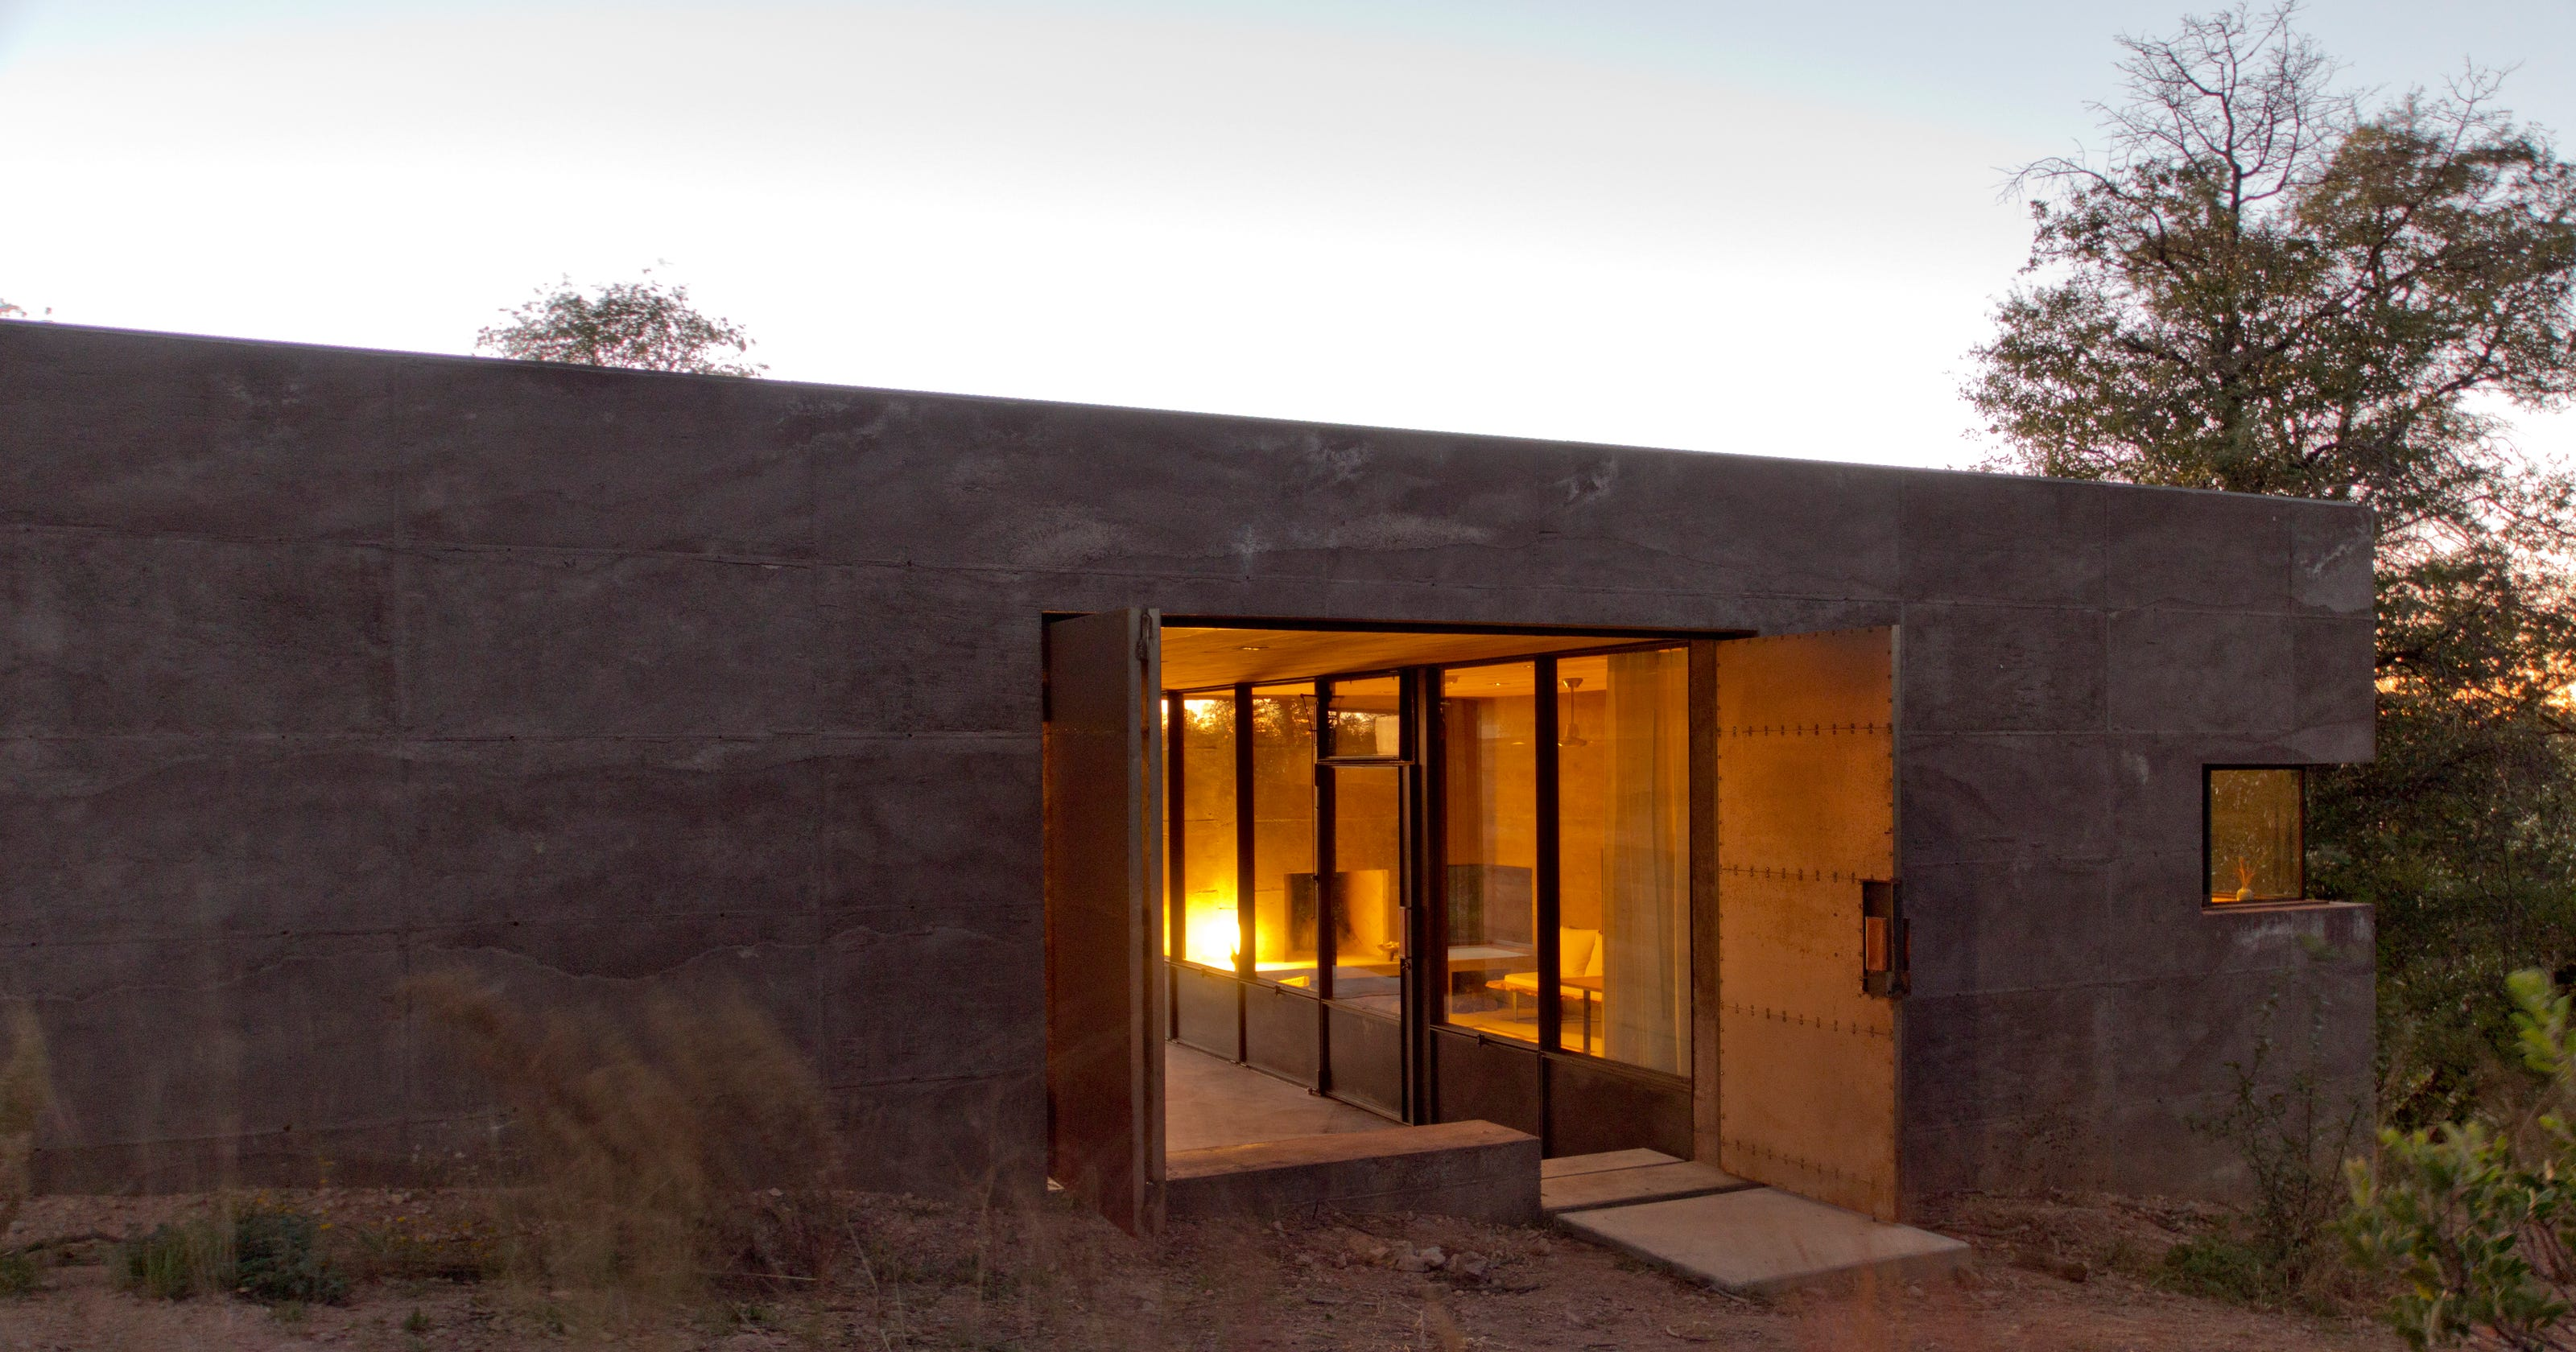 Cool Home Arizona House Featured On Esquire Off The Grid Private Sanctuary In Nature